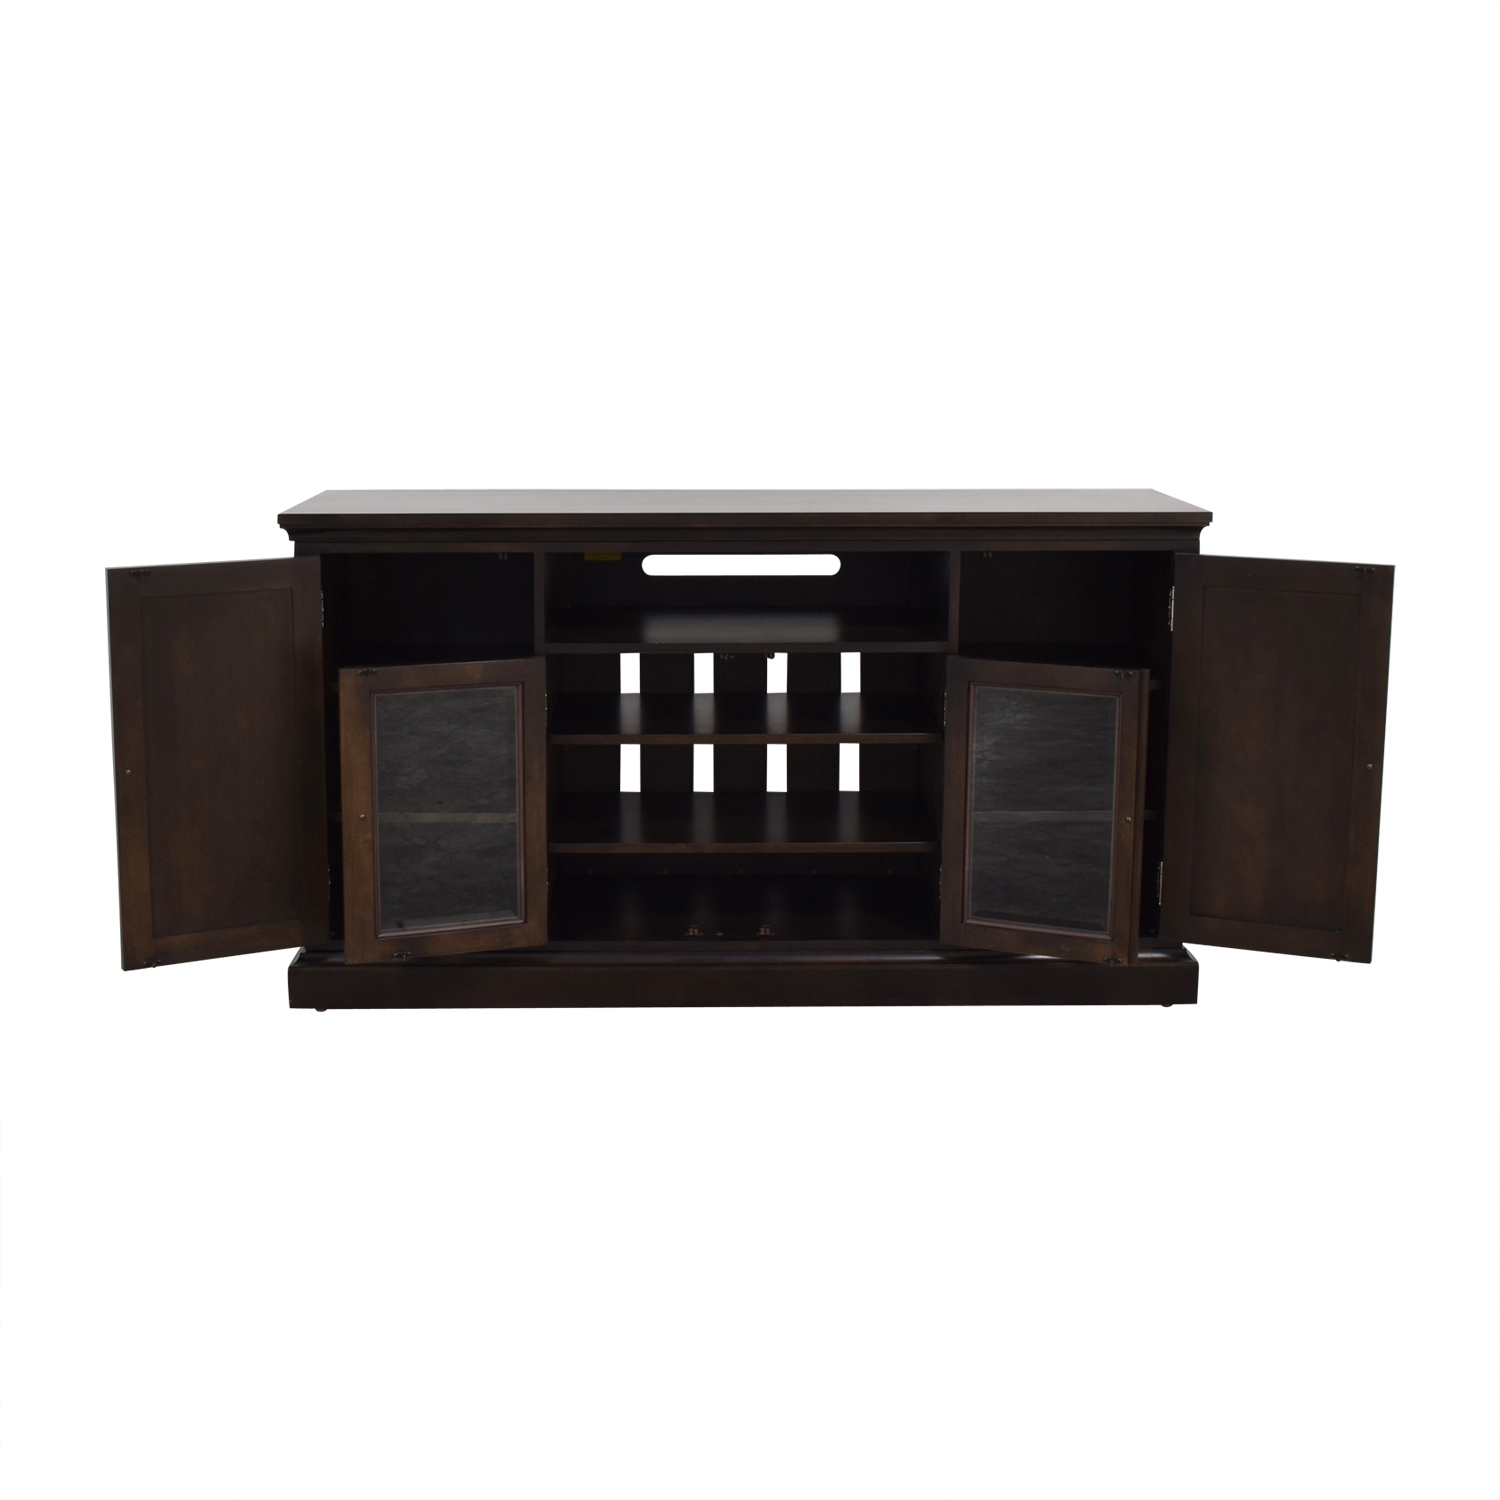 Ethan Allen Ethan Allen Wood and Glass Media Cabinet brown